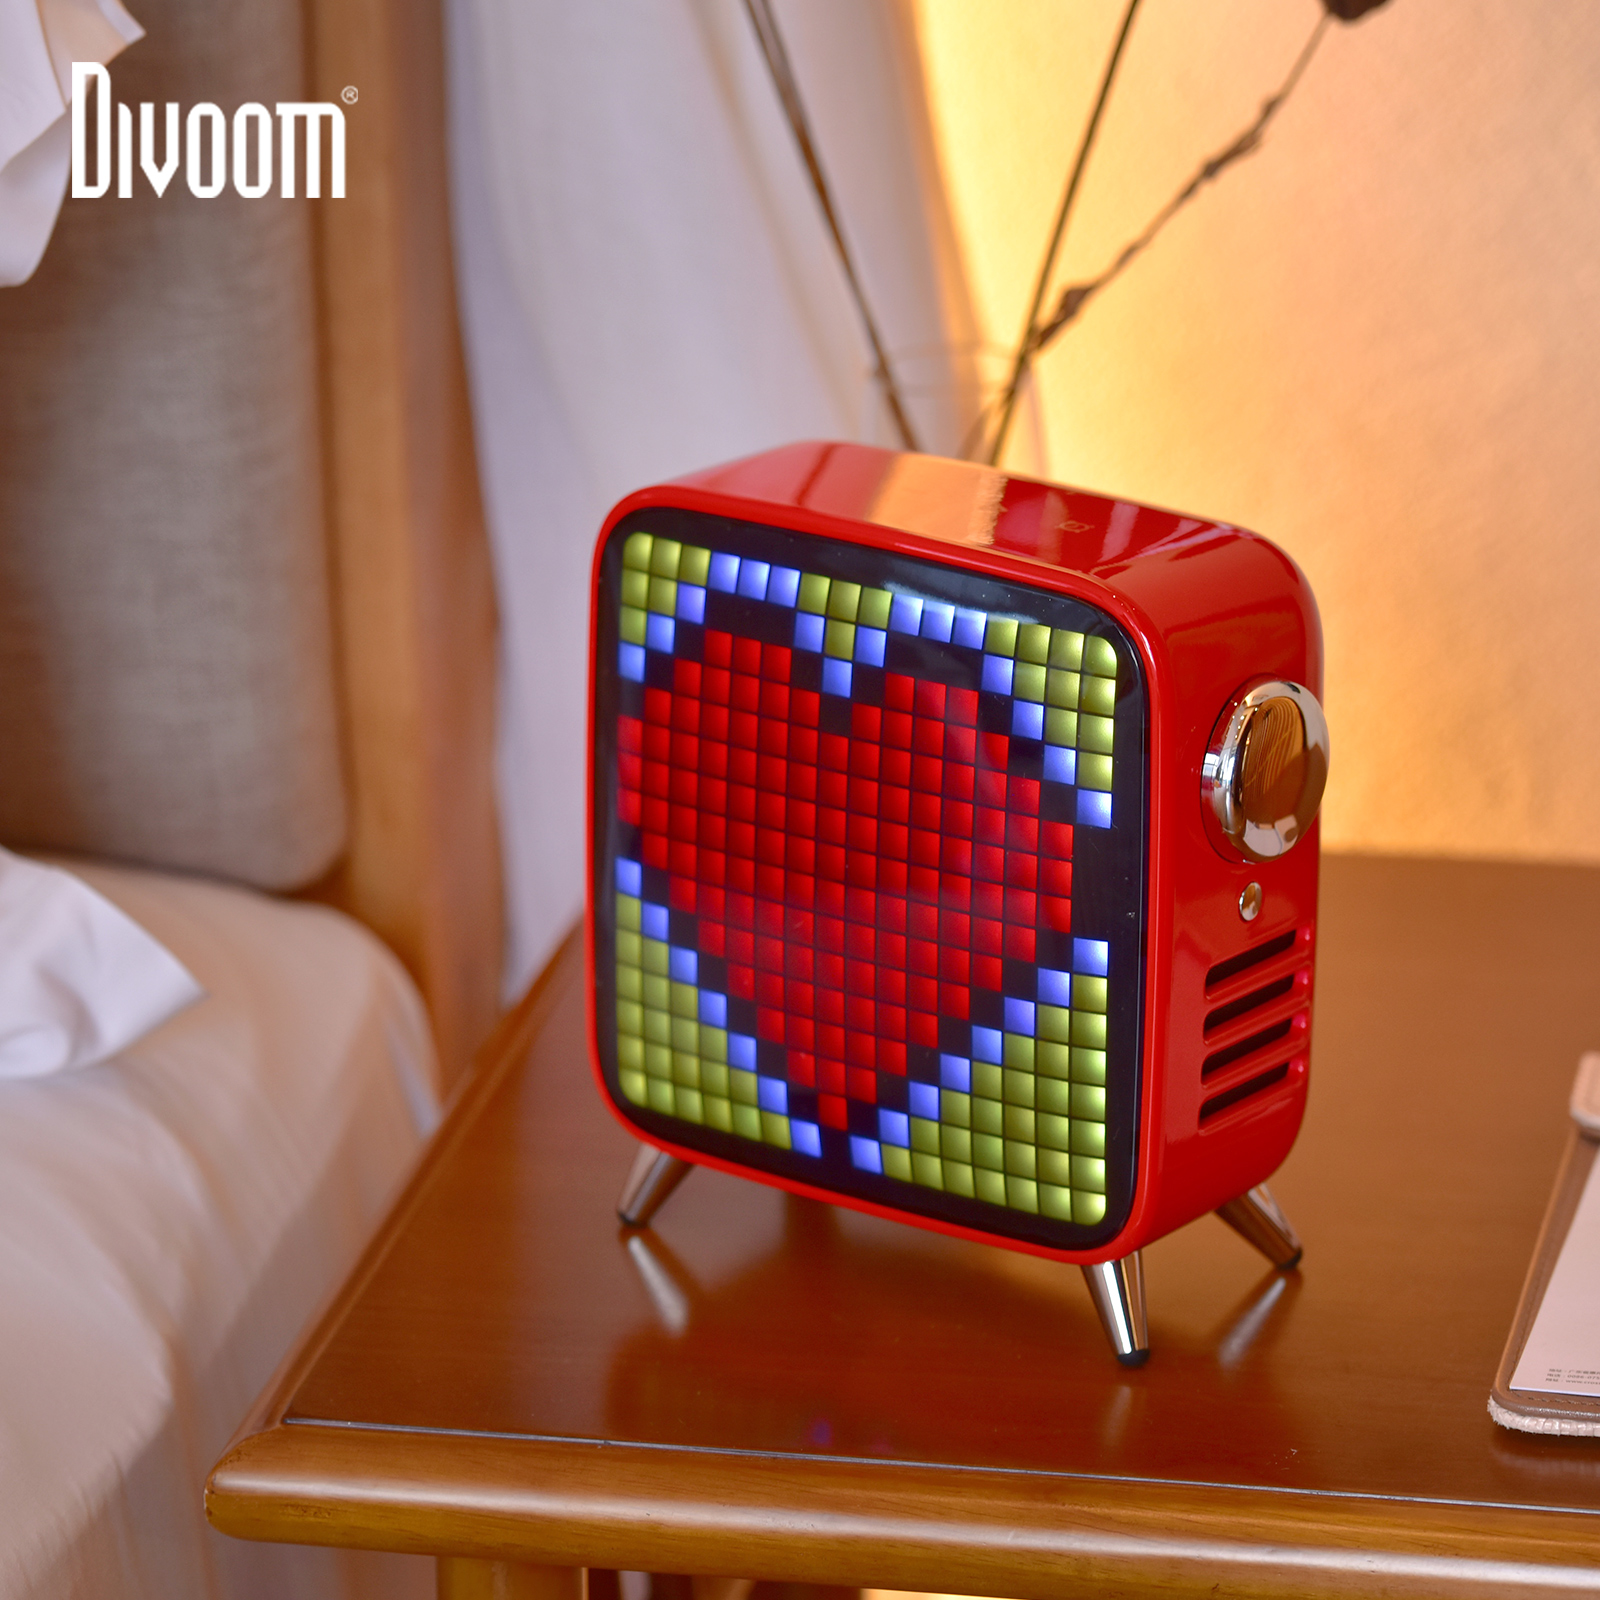 Divoom Tivoo Max Pixel Art Bluetooth Wireless Speaker with 2.1 Audio System 40W Output Heavy Bass App control for IOS & AndroidPortable Speakers   -